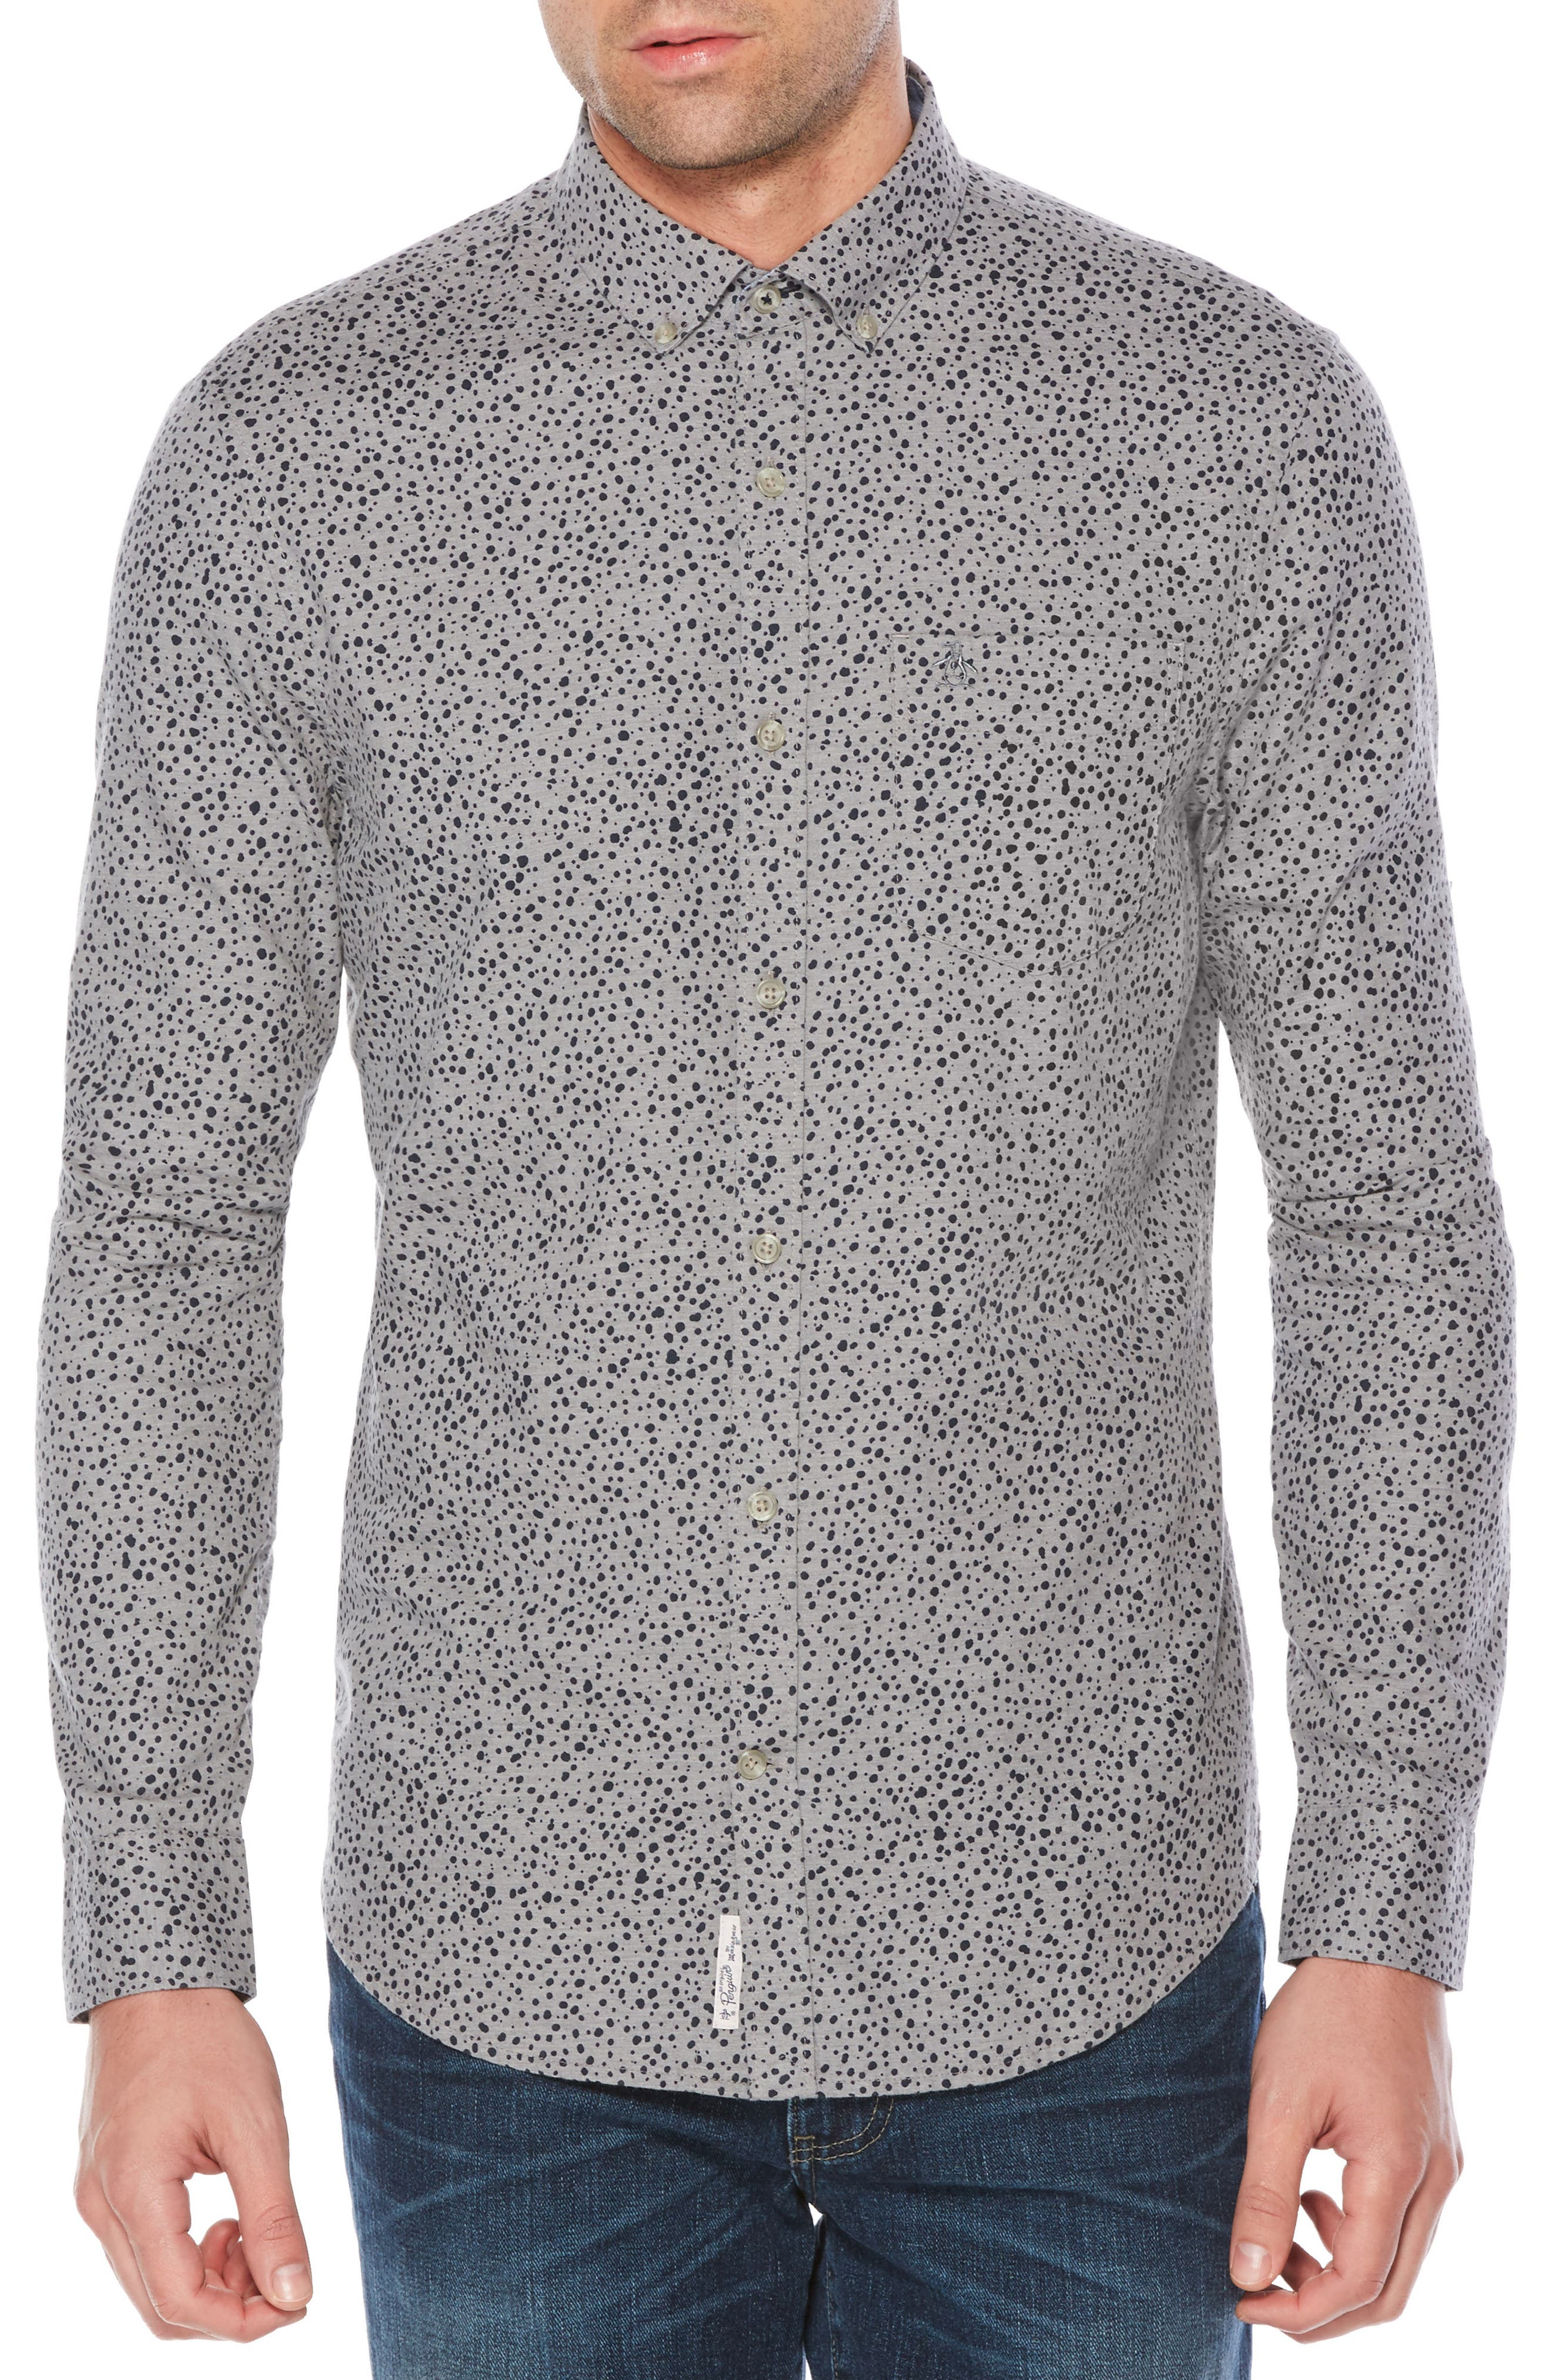 Alternate Image 1 Selected - Original Penguin Drop Print Shirt